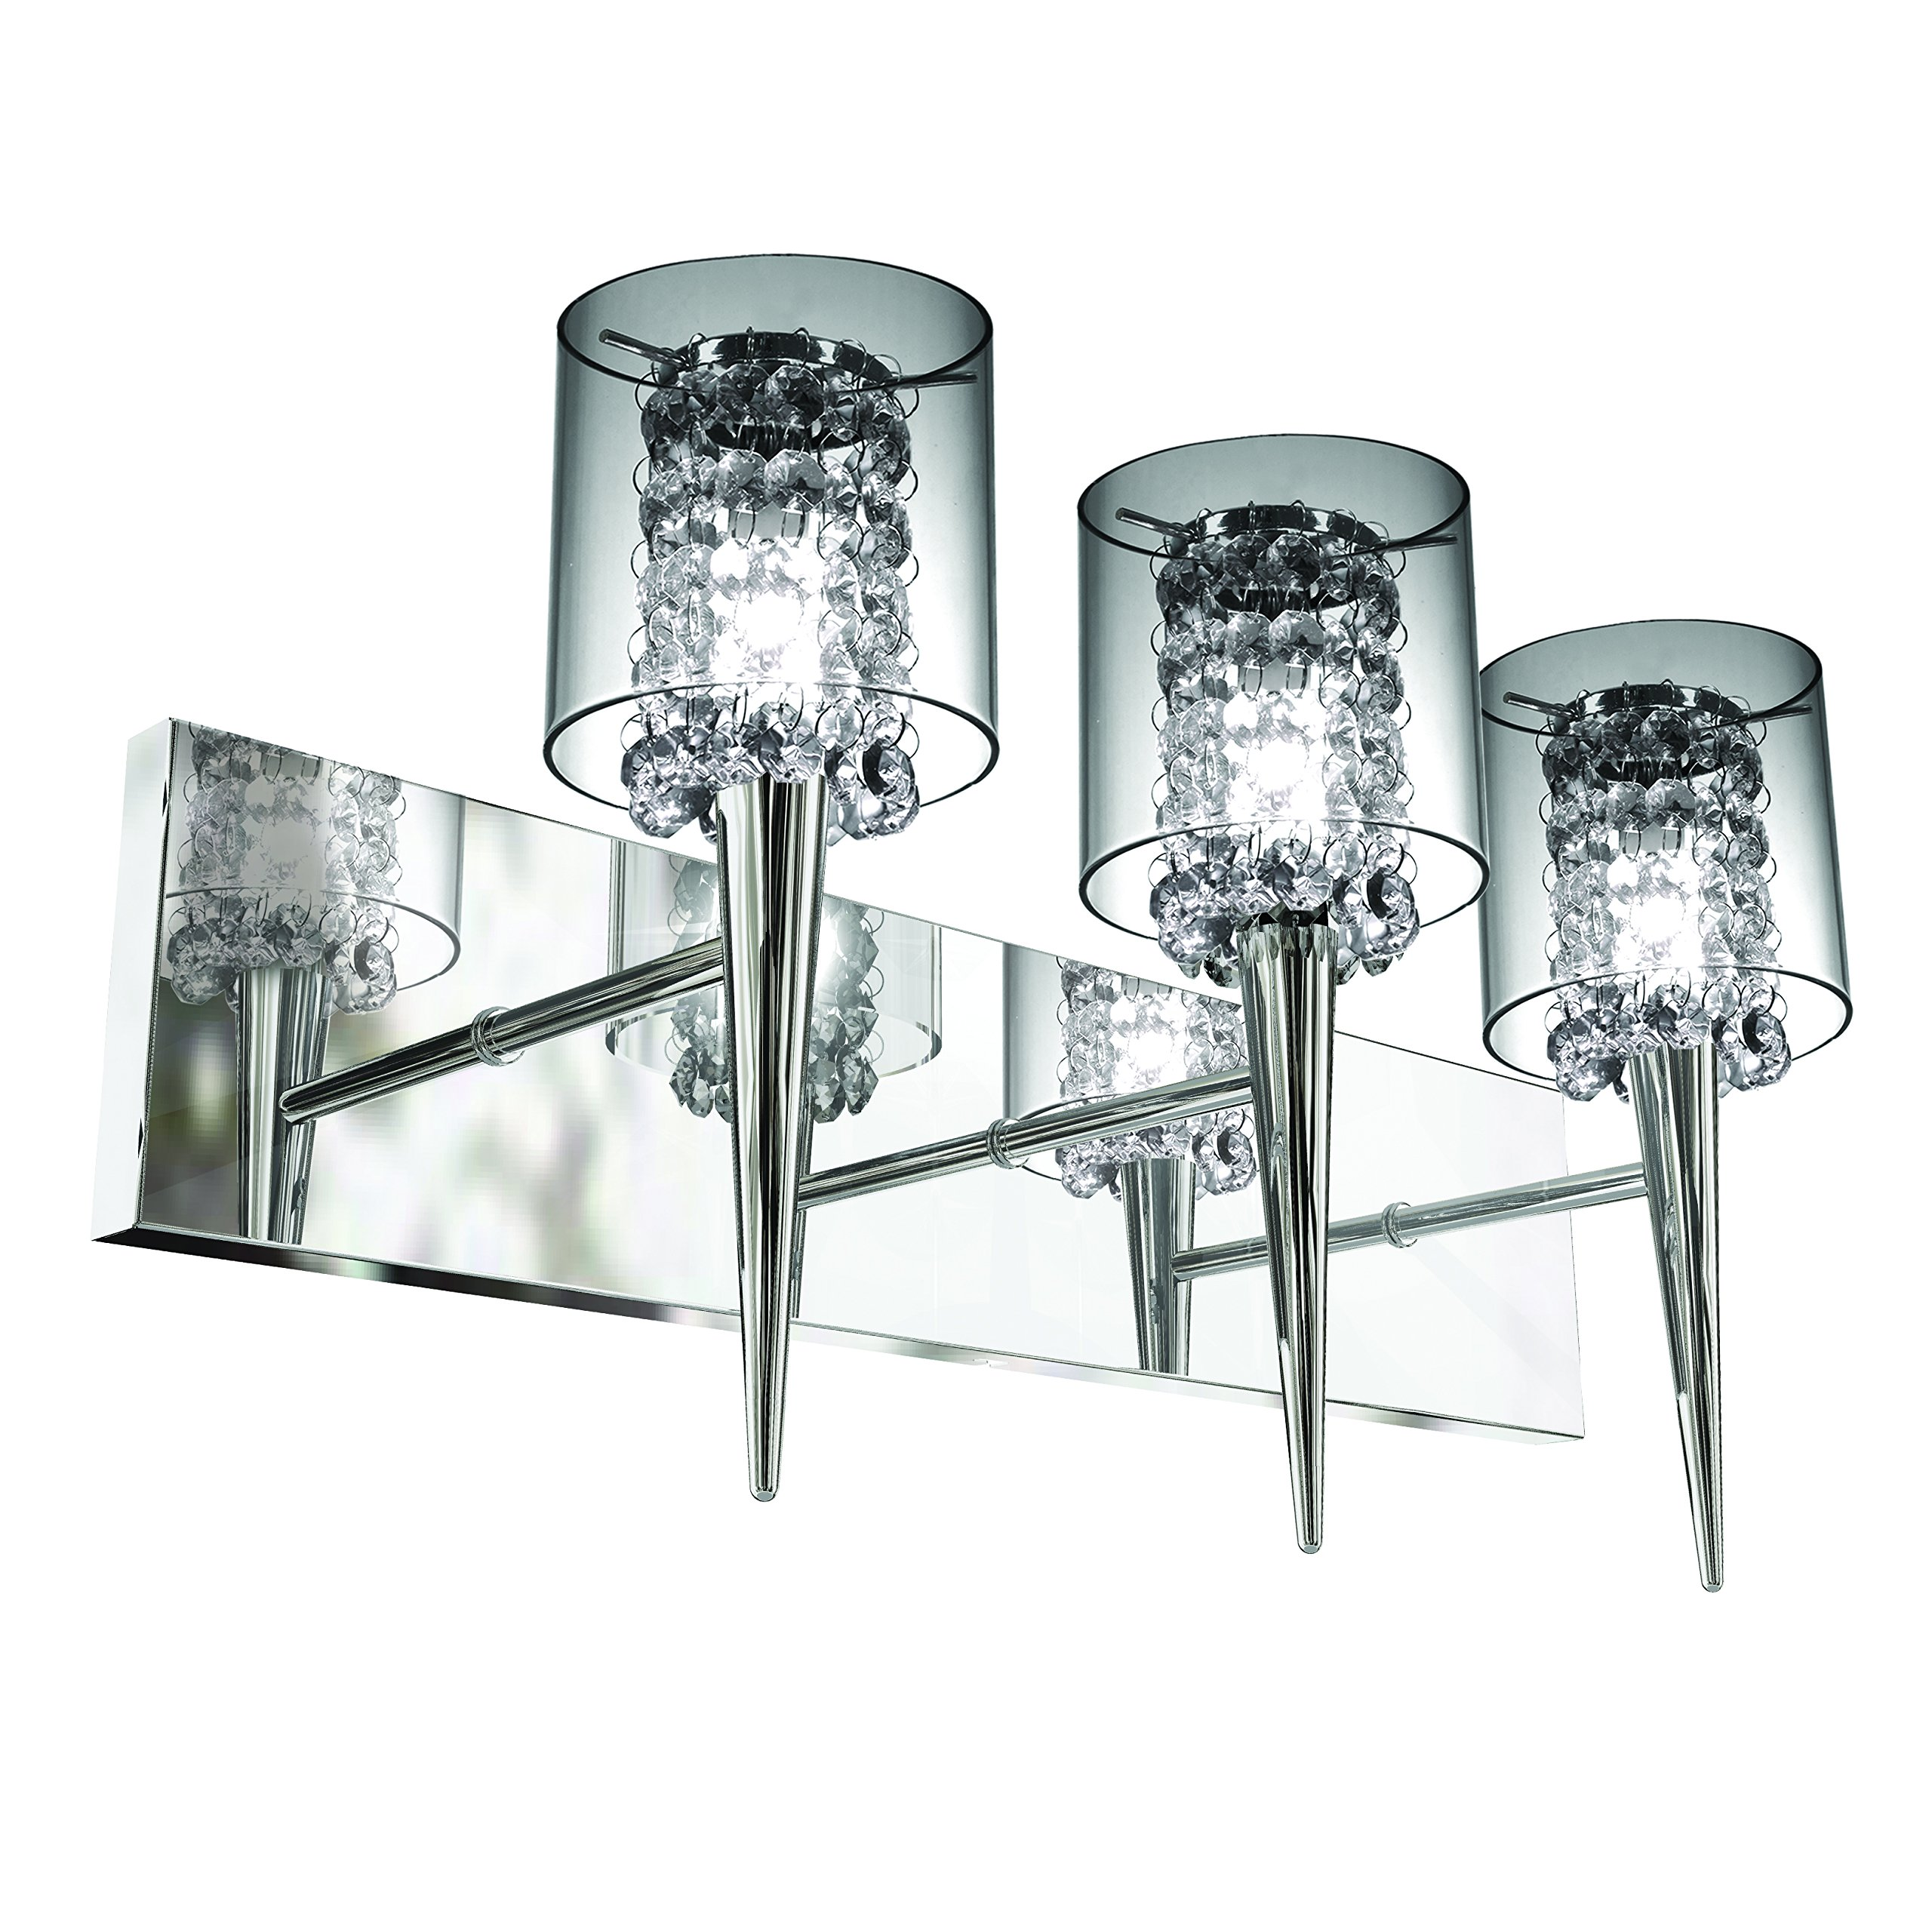 Bazz Glam Wall Fixture, Dimmable, Easy Installation, 20-in, Chrome